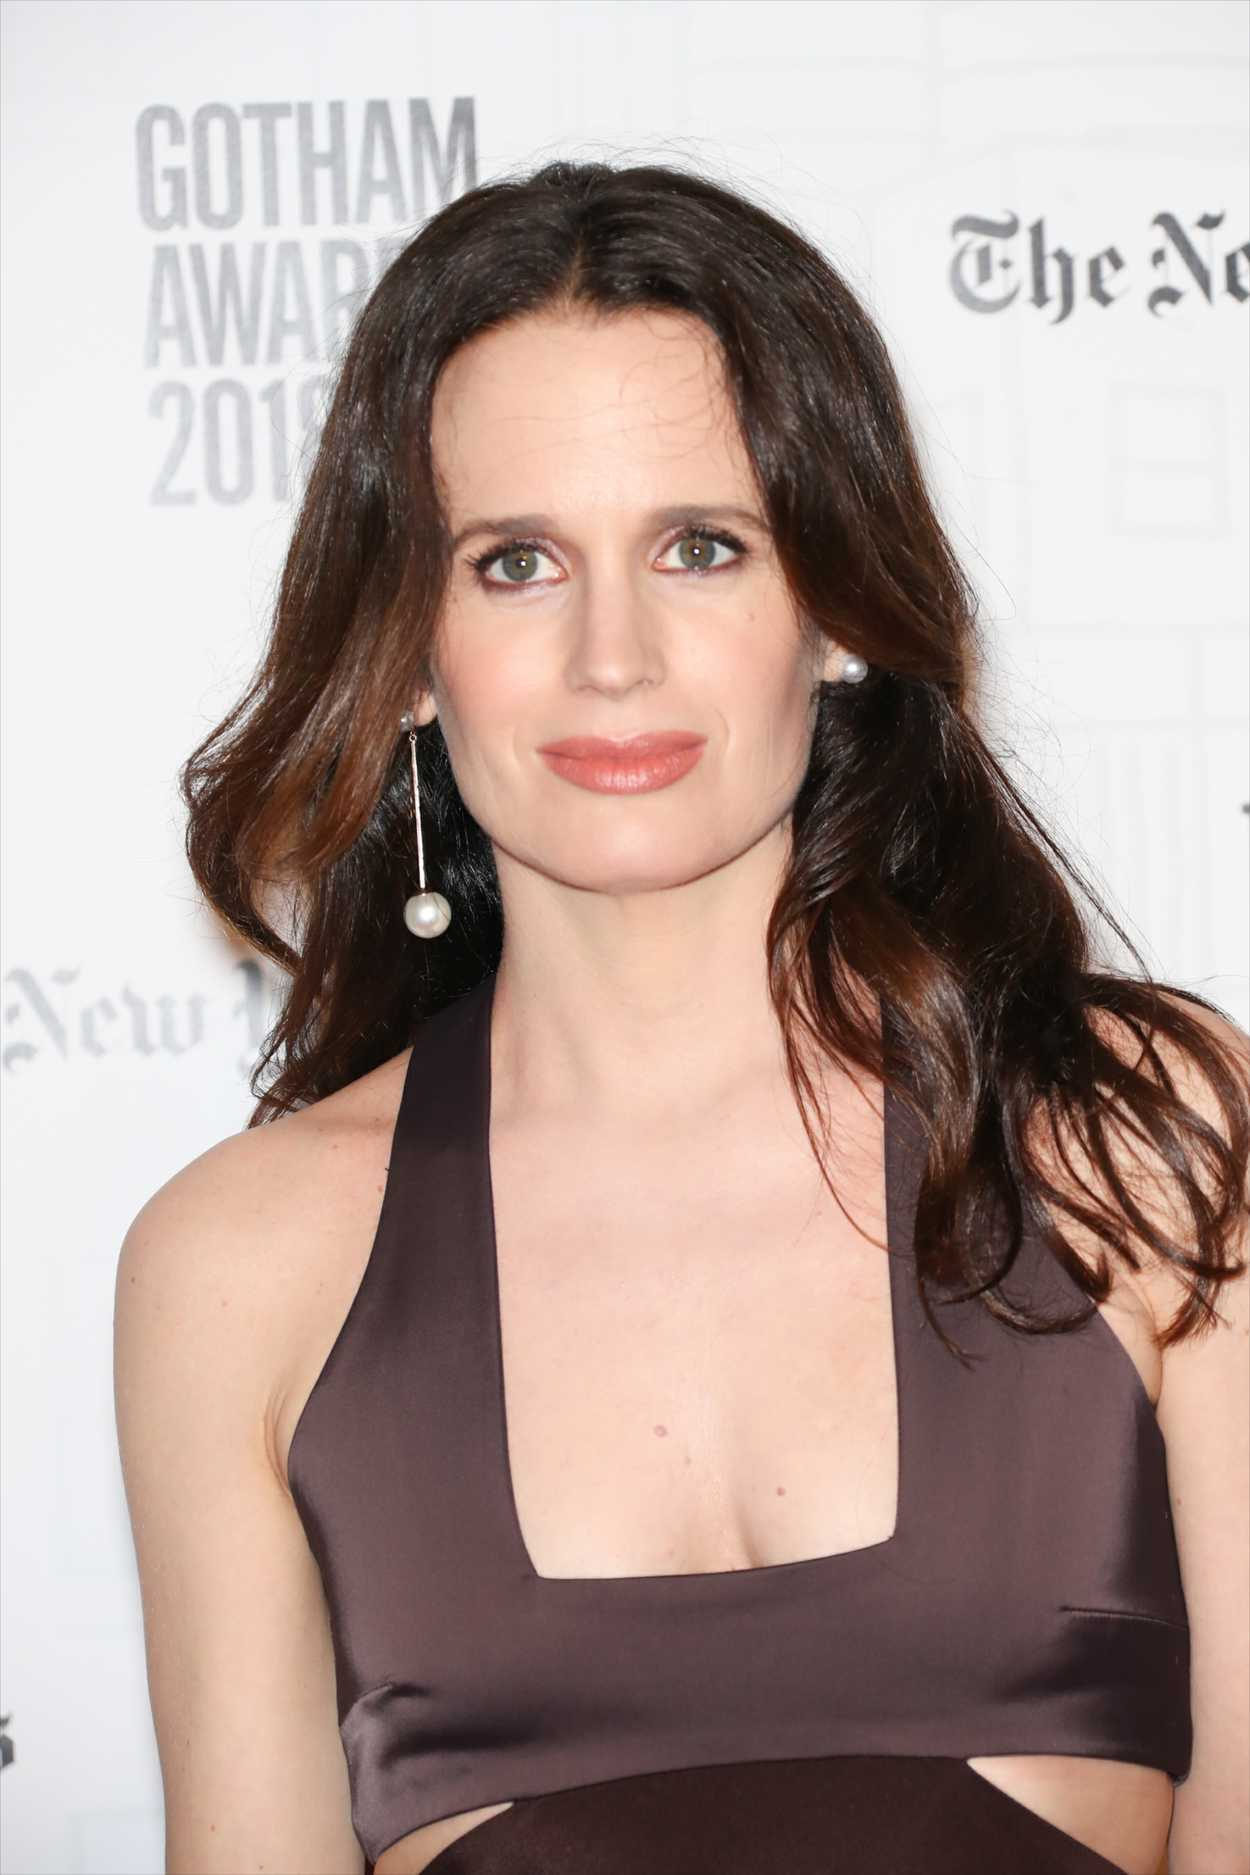 Elizabeth Reaser Attends The 28th Annual Gotham Awards In